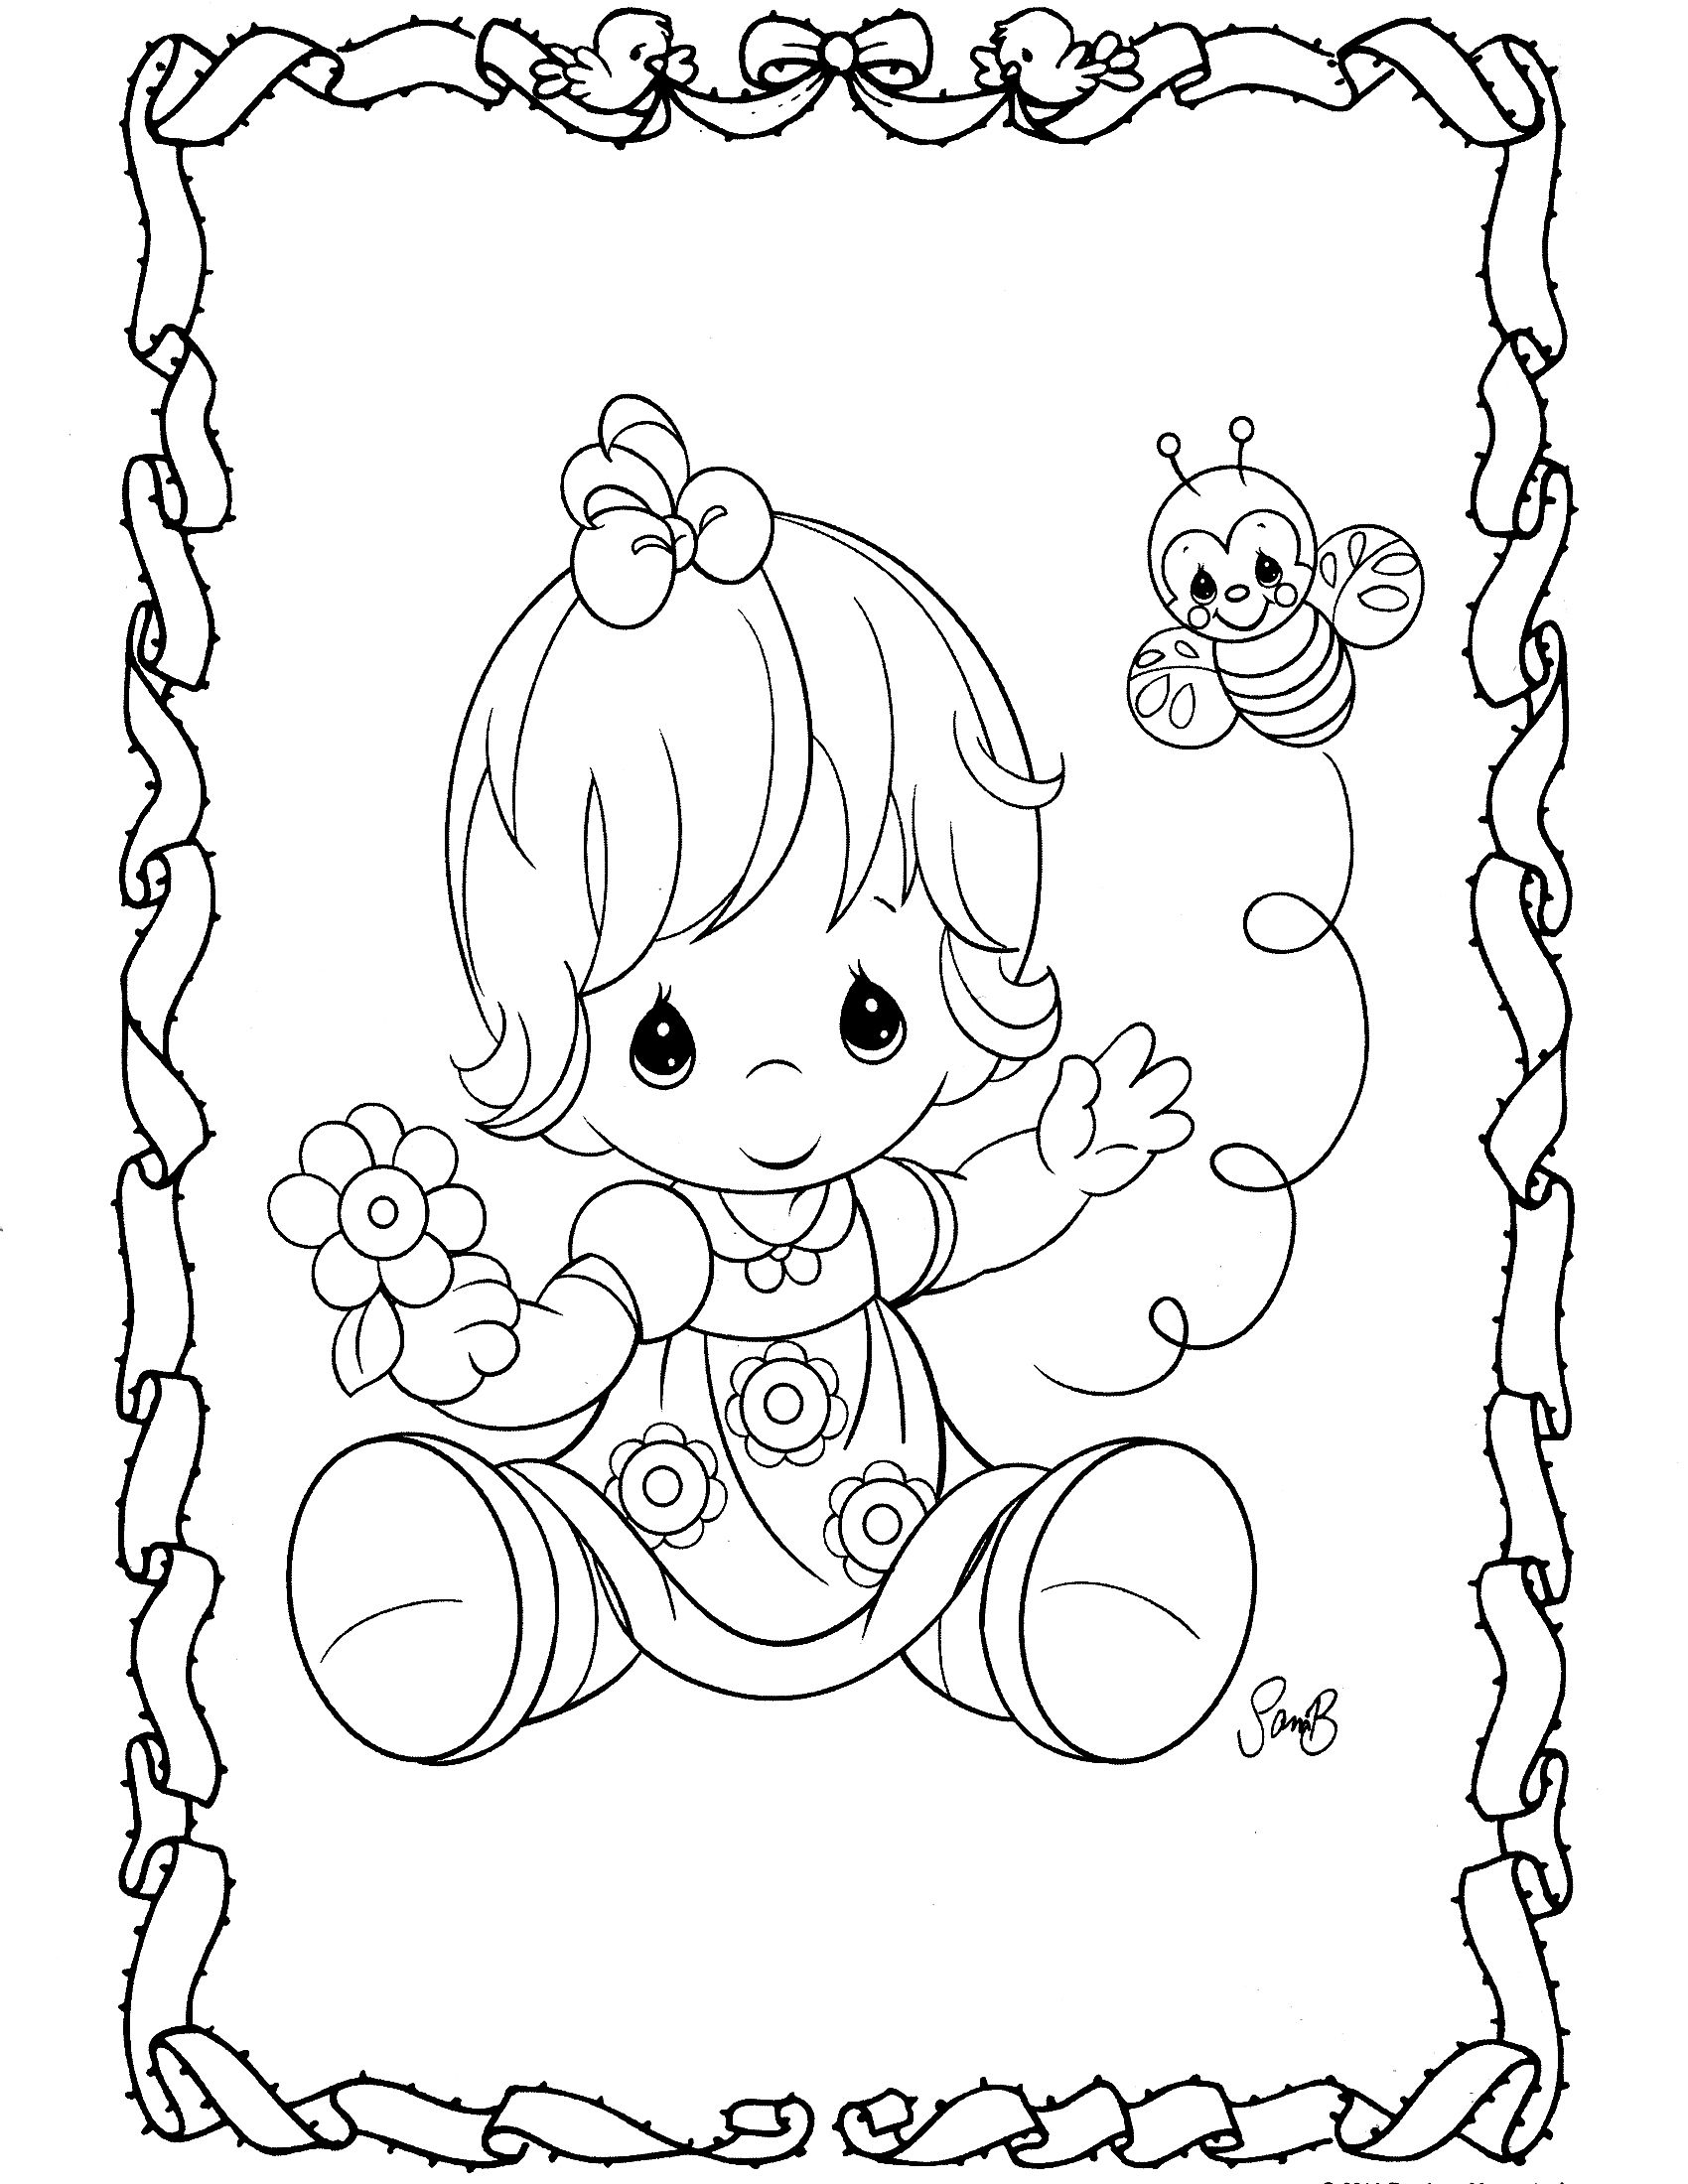 Precious Moments Coloring Pages - Precious Moments Coloring Page